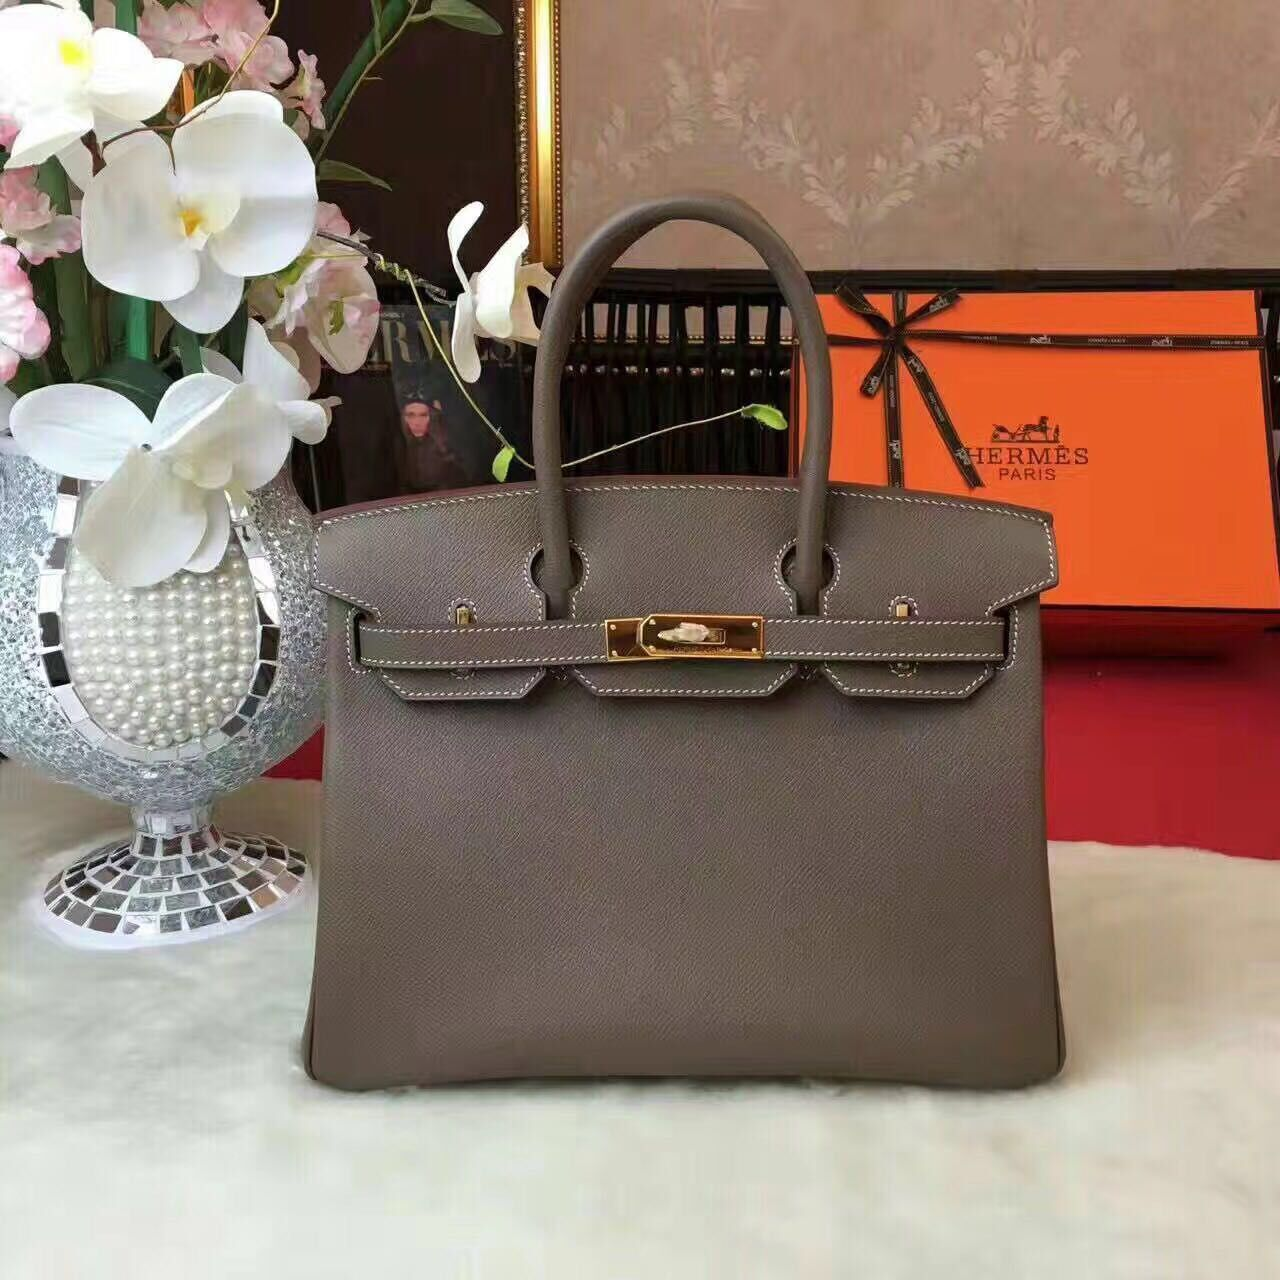 Hermes Birkin Bag Original Leather 17825 Grey